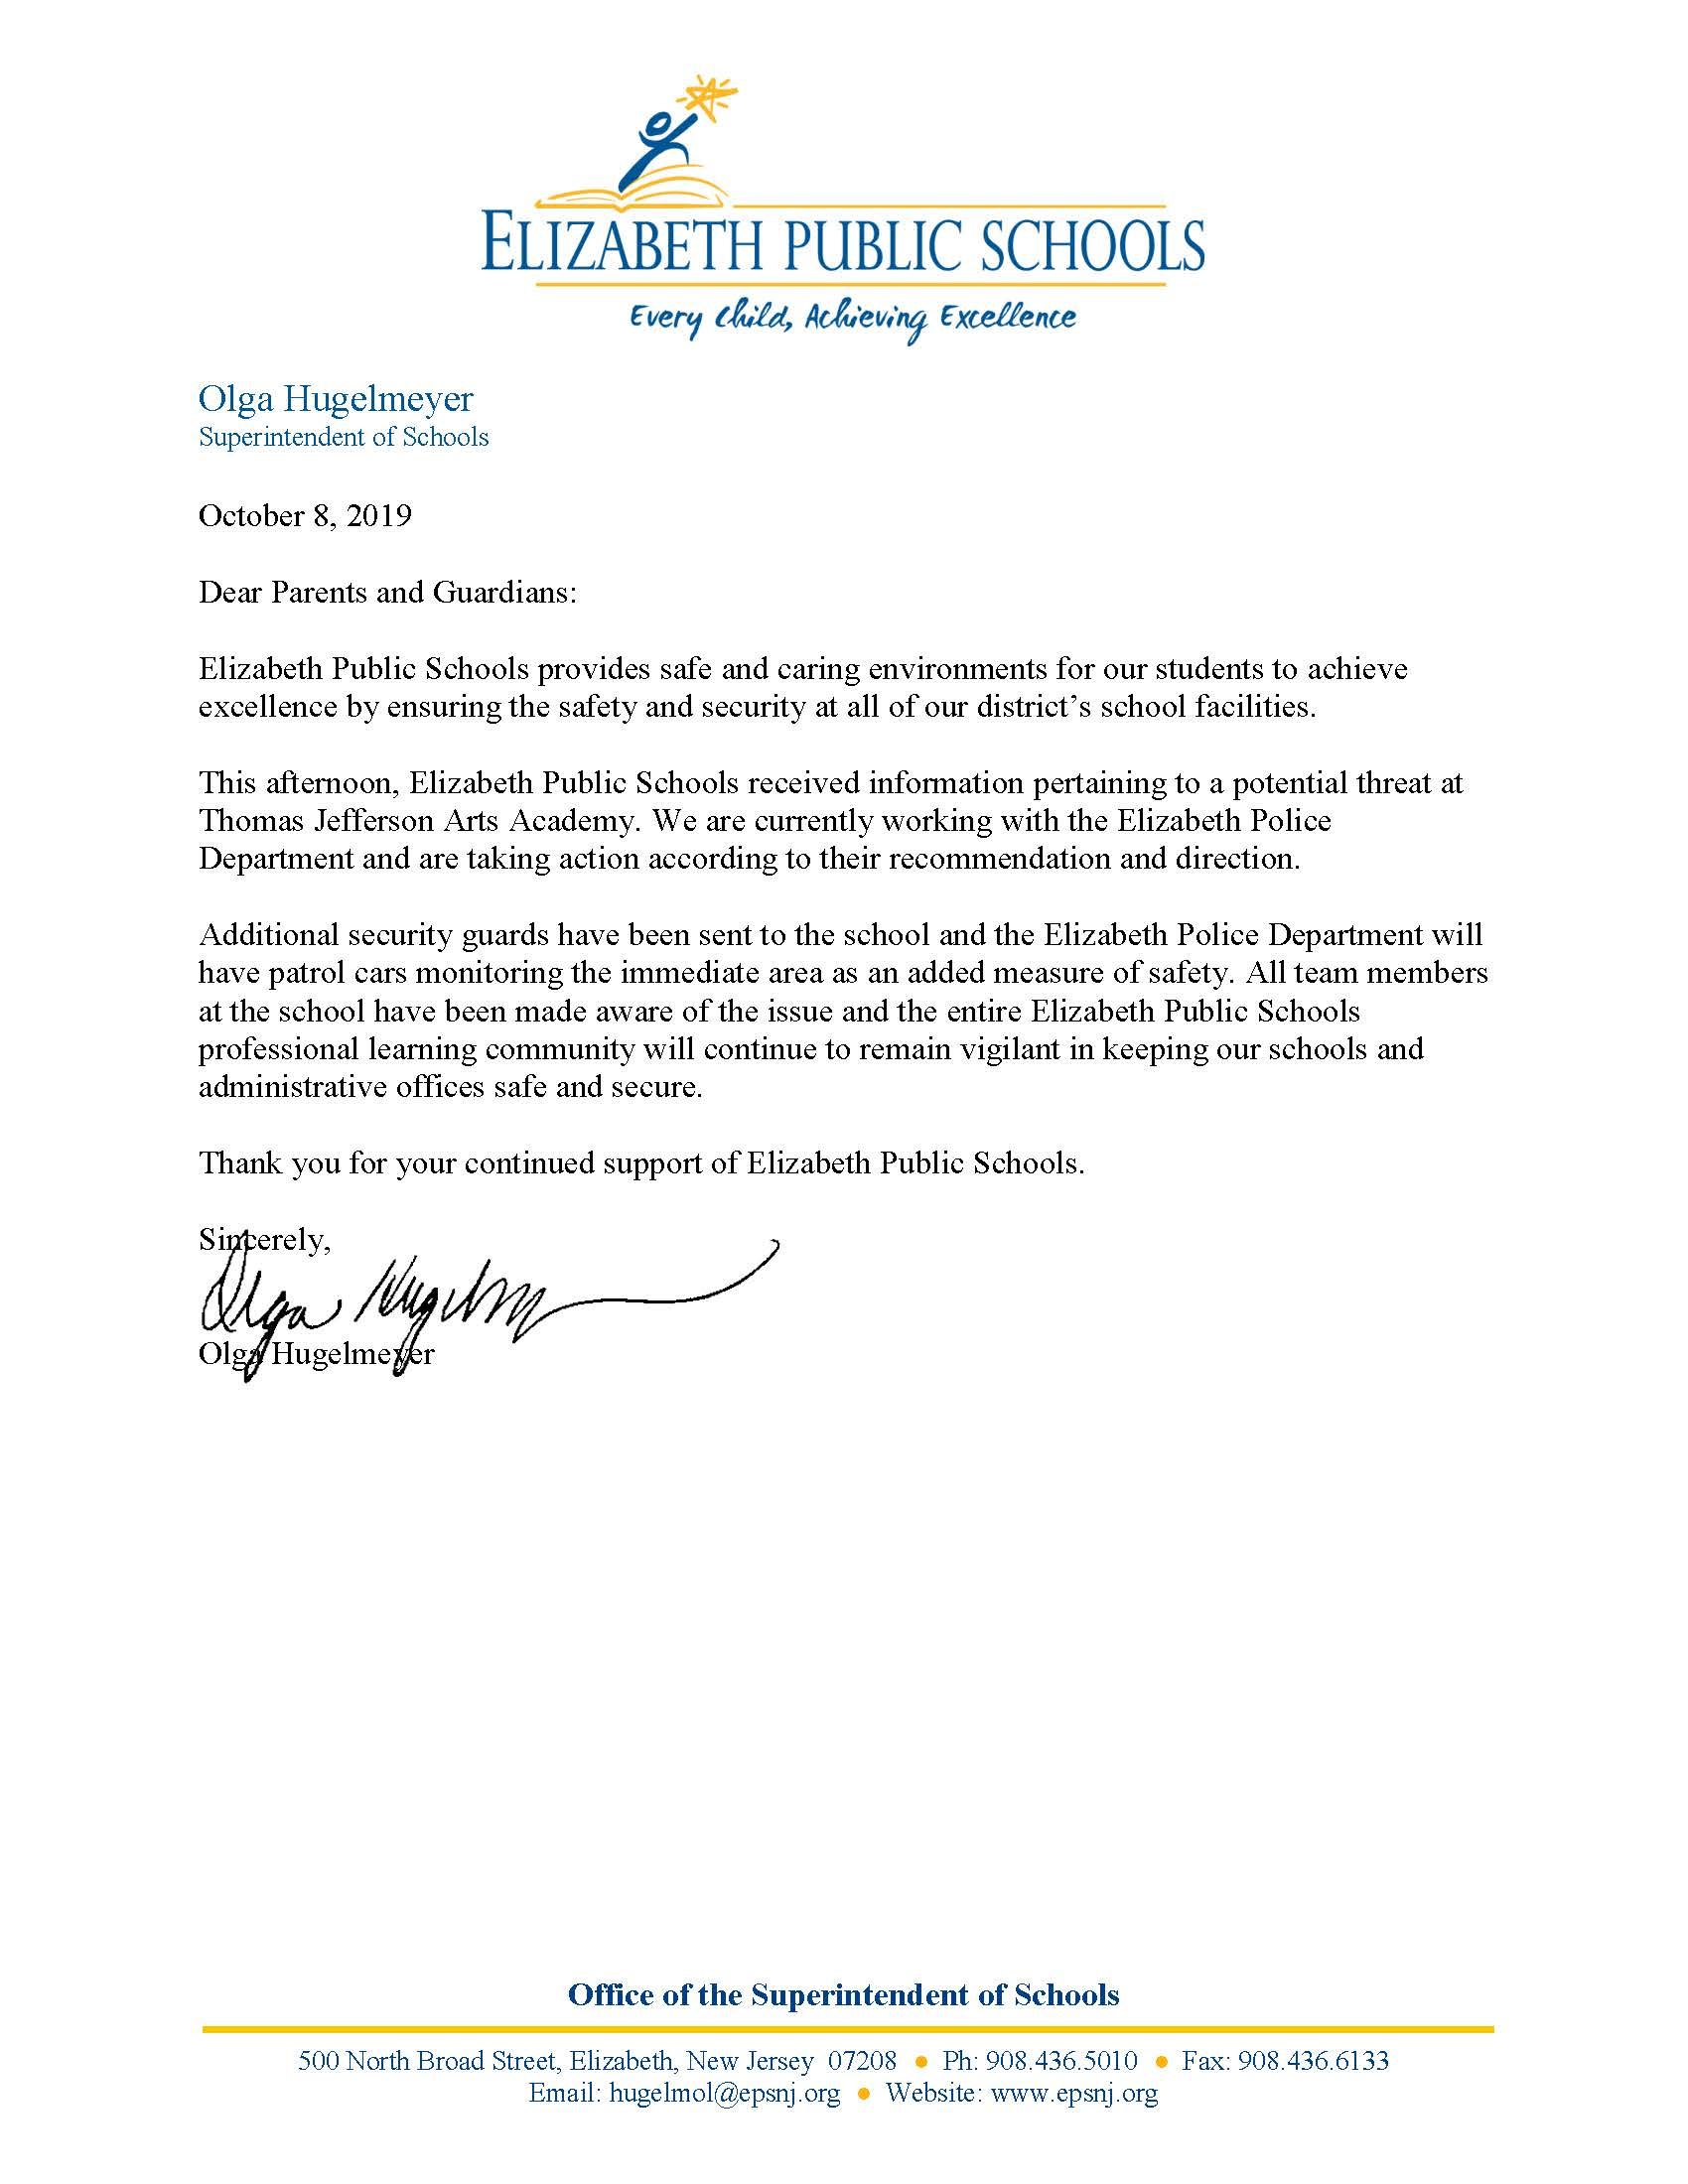 Letter to parents about reported threat at Thomas Jefferson Arts Academy-10-8-19